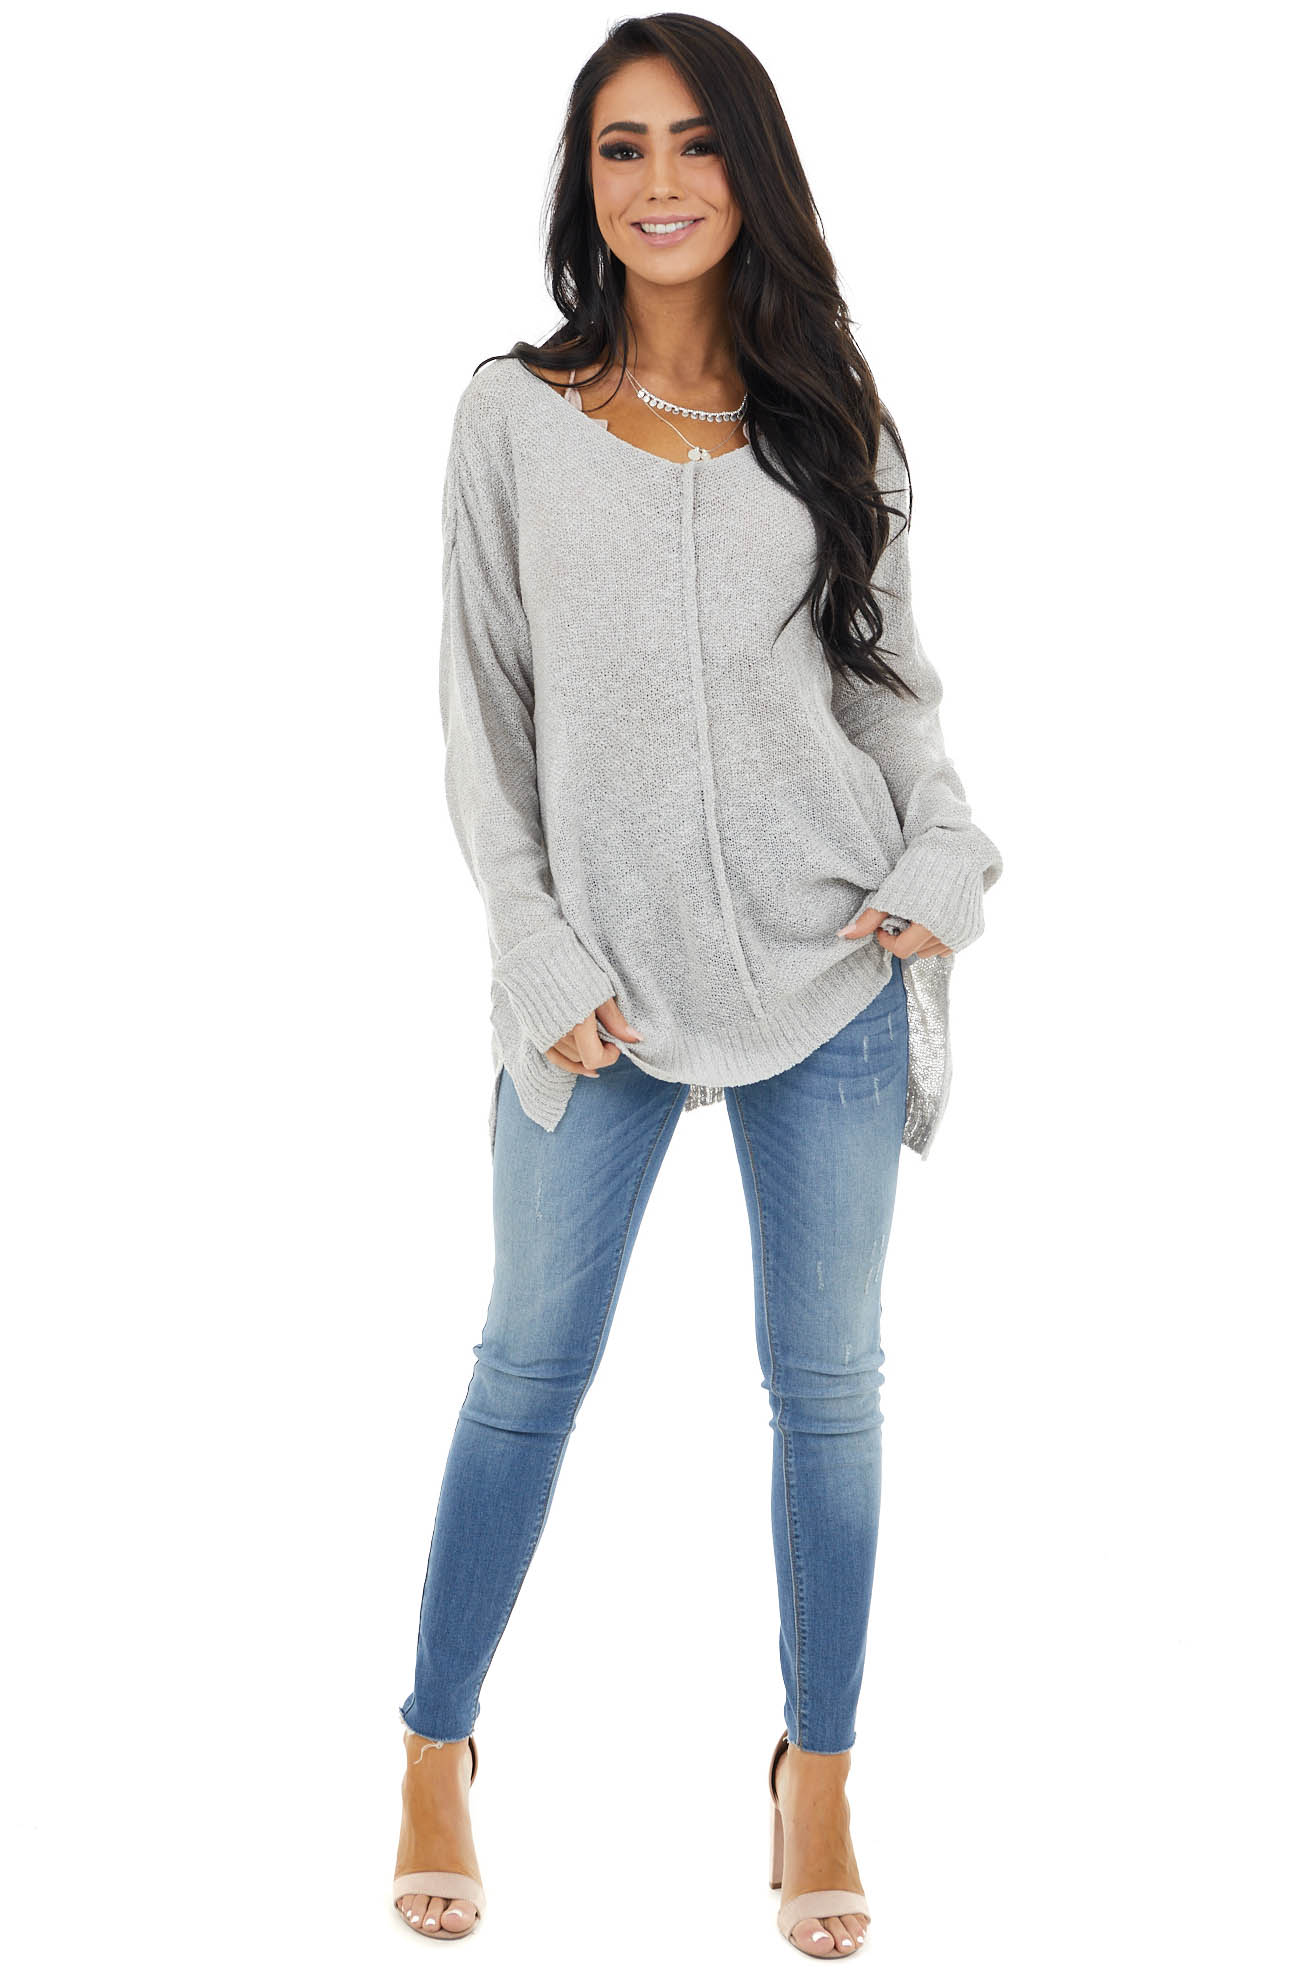 Dove Grey Light Sweater with Front and Back Seam Detail